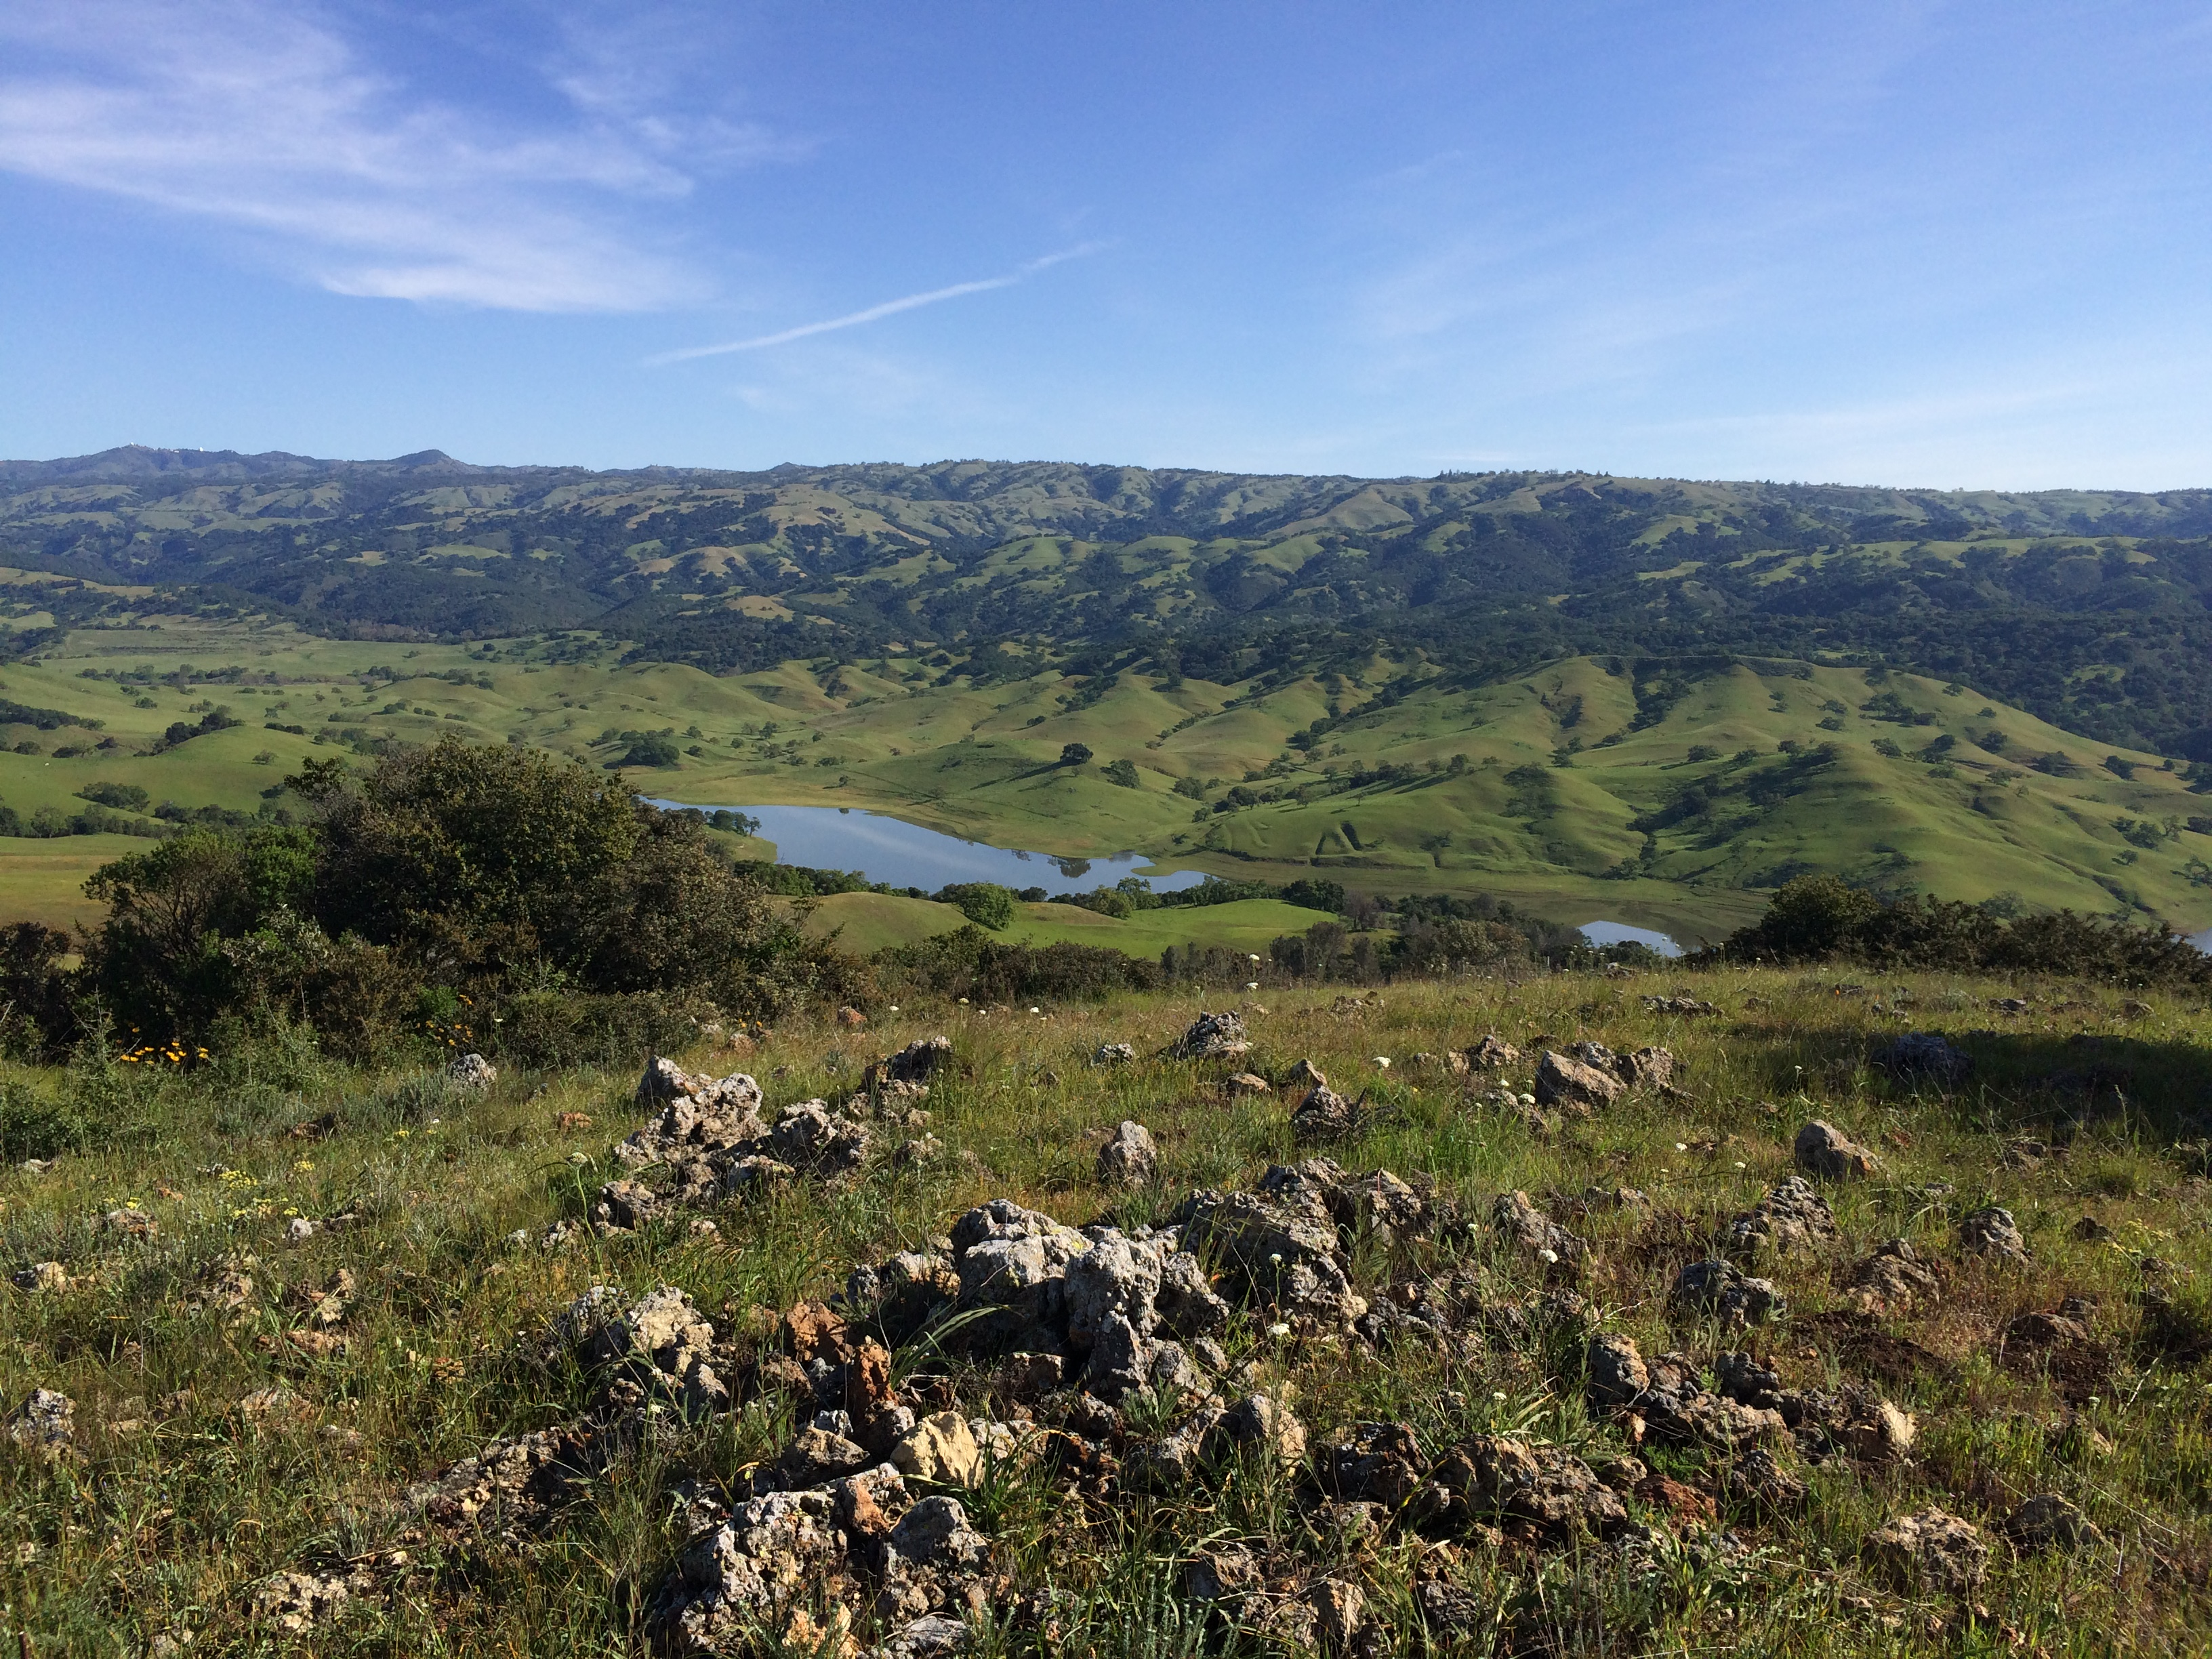 View from Coyote Ridge in South San Jose